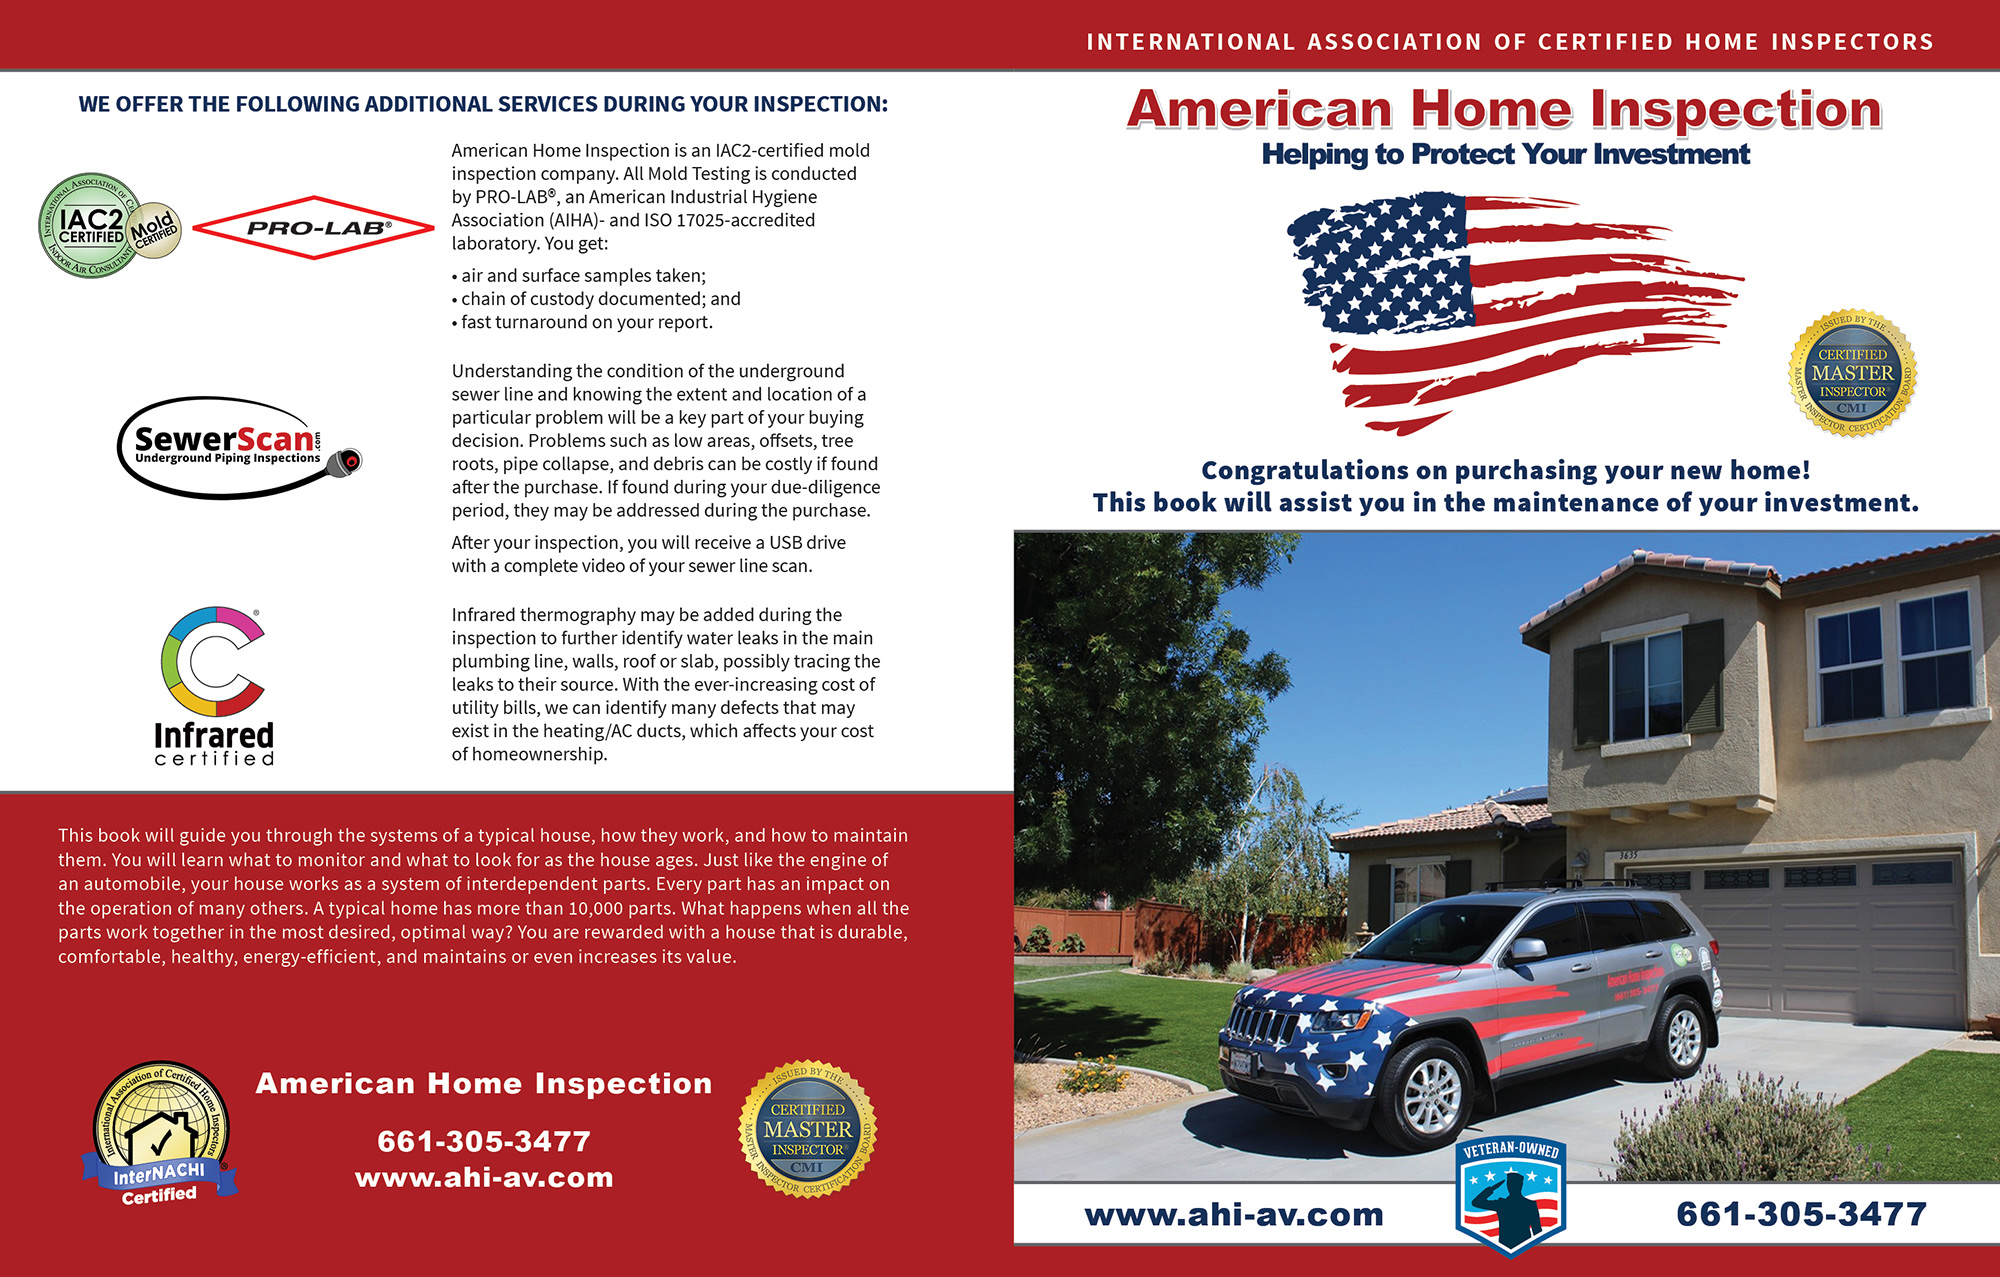 Custom Home Maintenance Book for American Home Inspection.